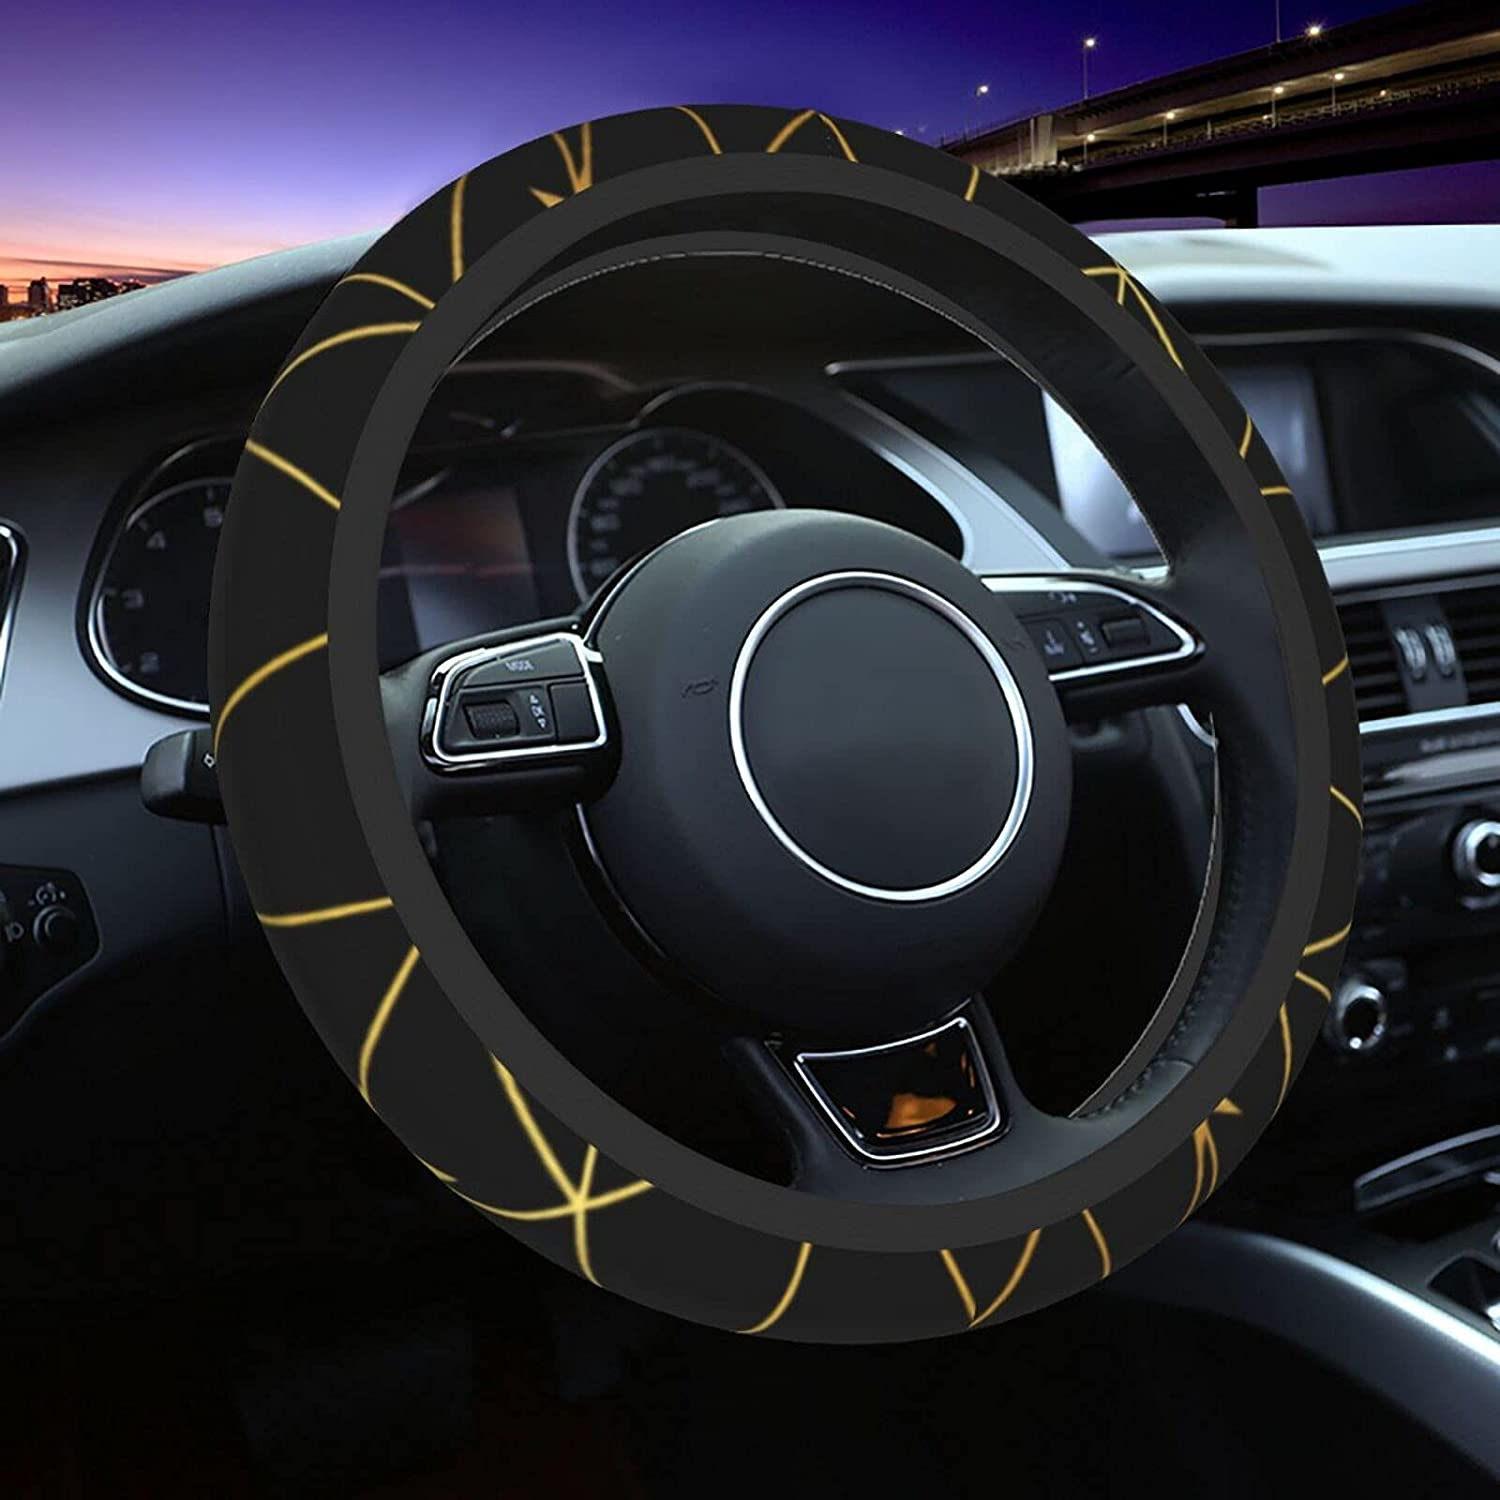 Black and Gold Stars Network Non-Slip Memphis Low price Mall Steering Cover Elast Wheel